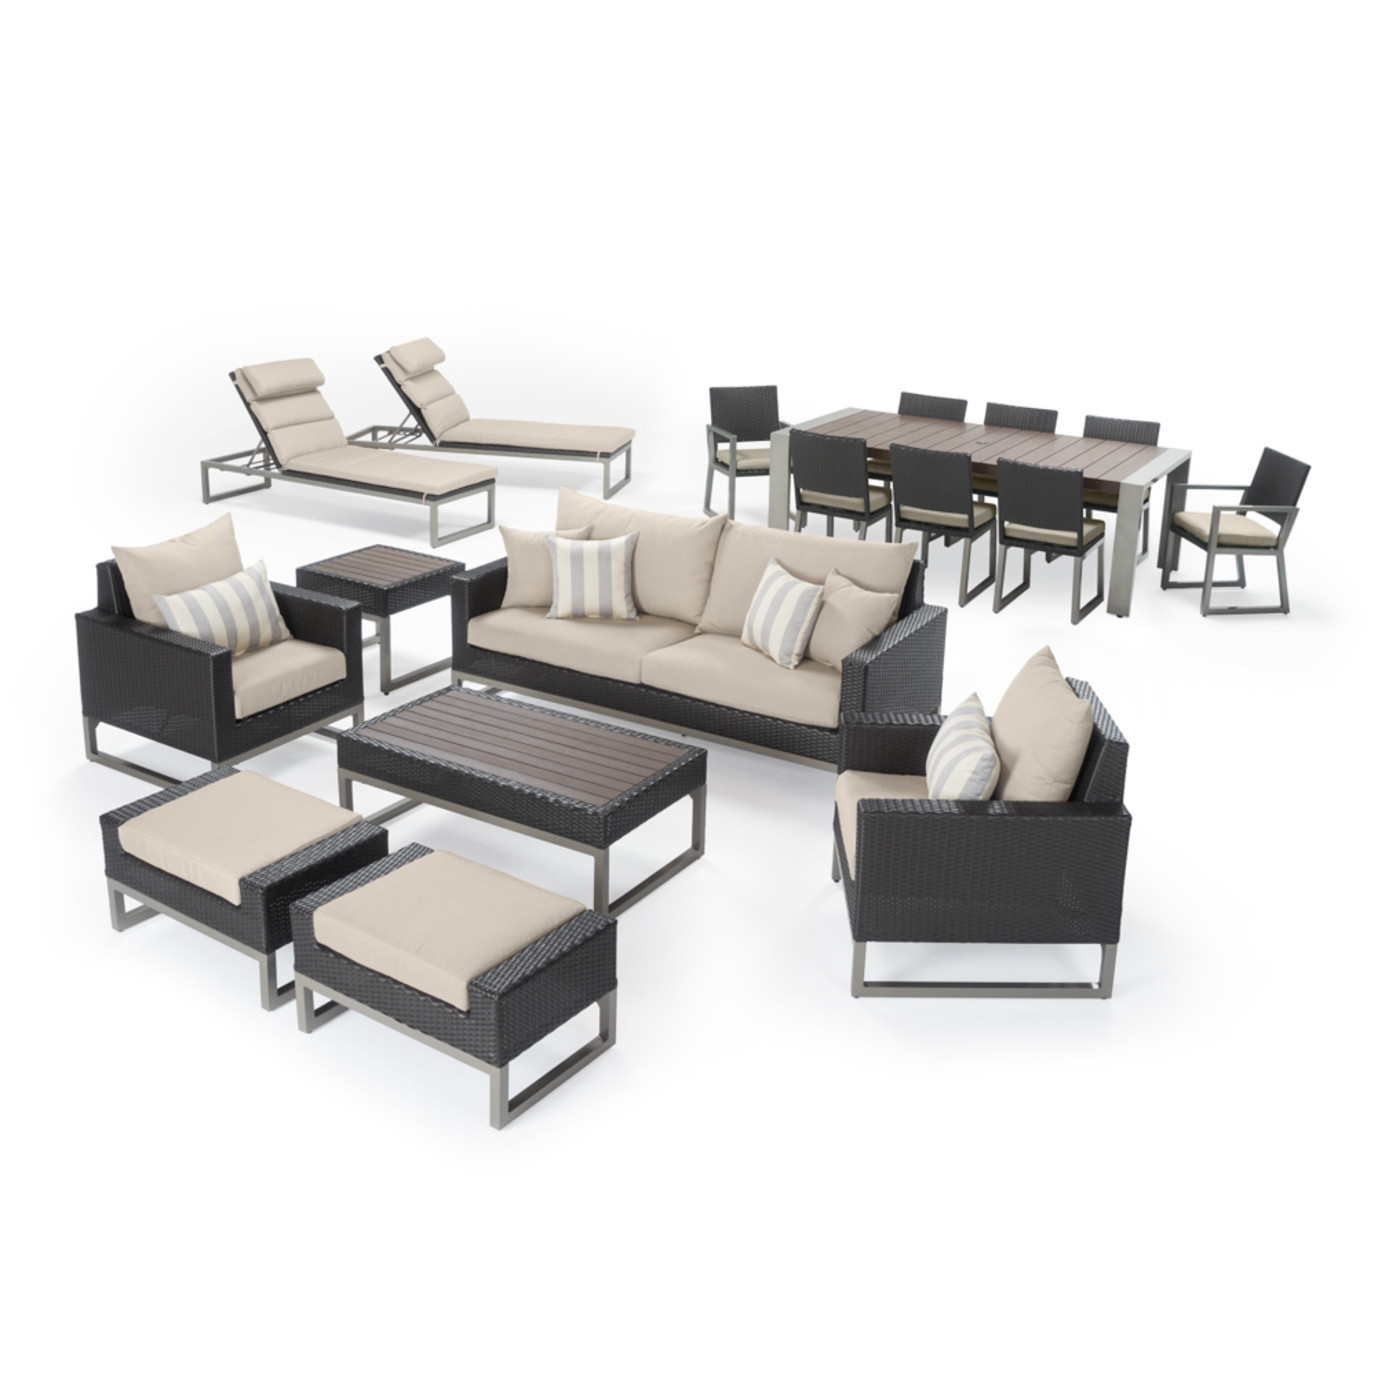 Milo™ Espresso 18 Piece Estate Set - Slate Gray